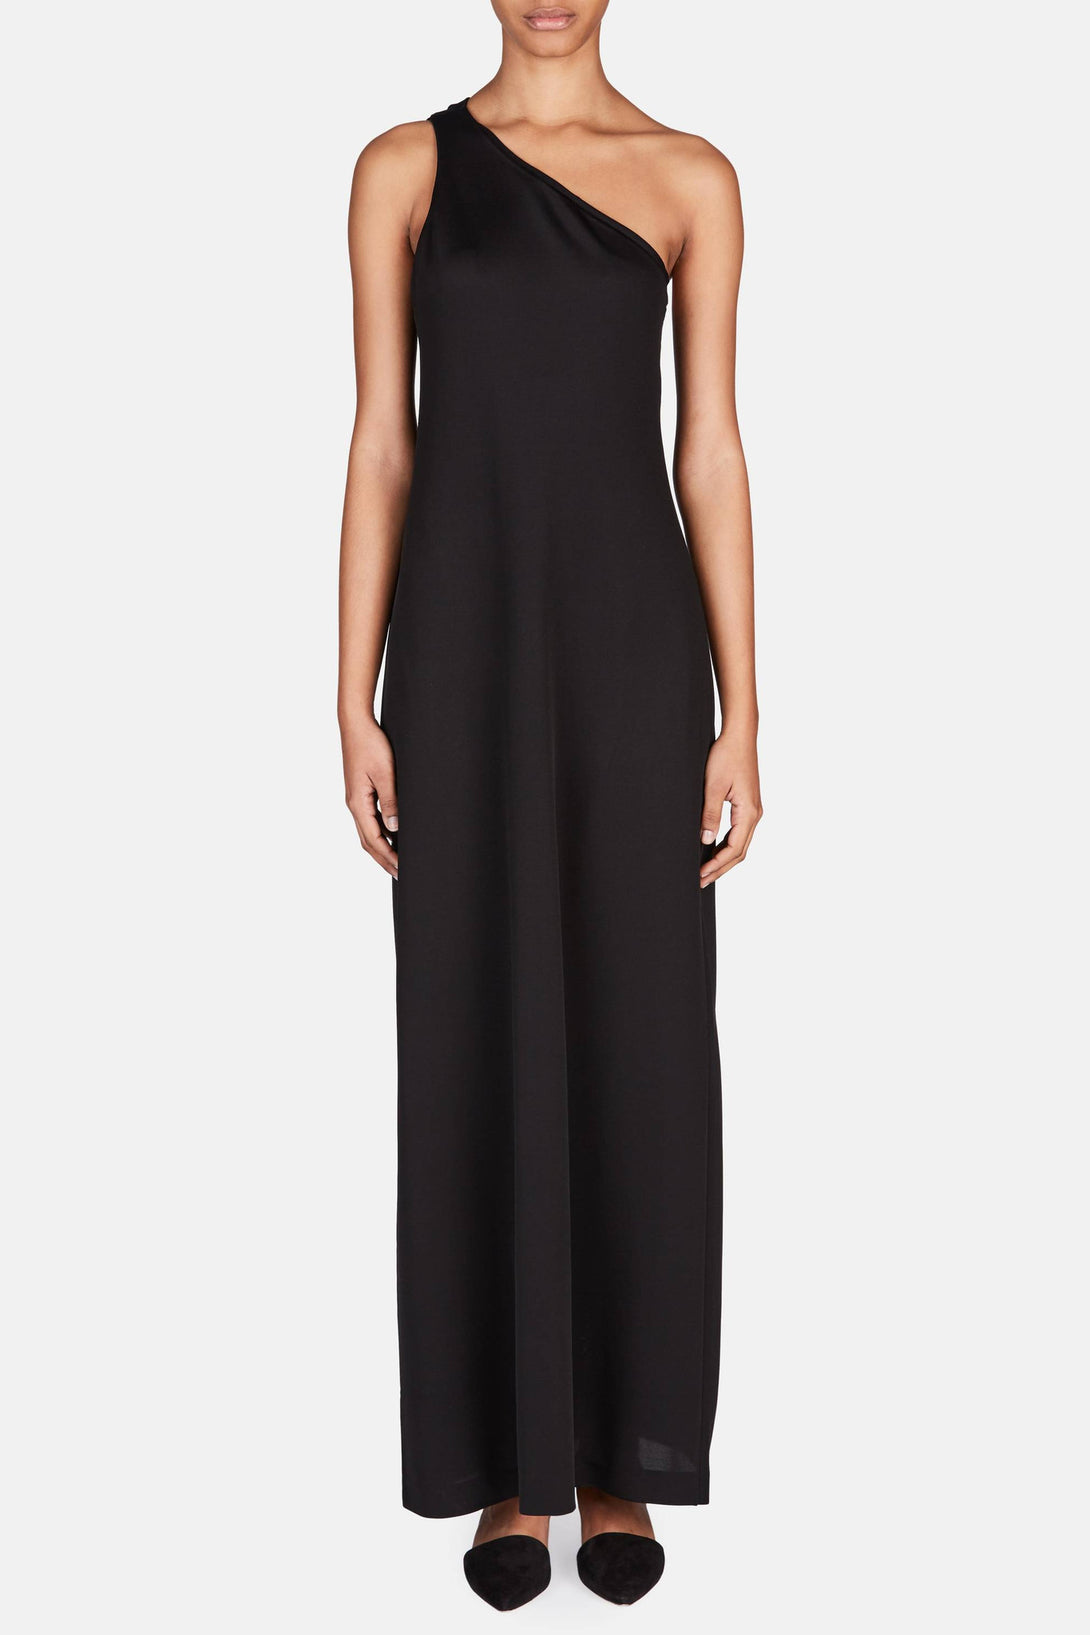 Annie Long Dress - Black